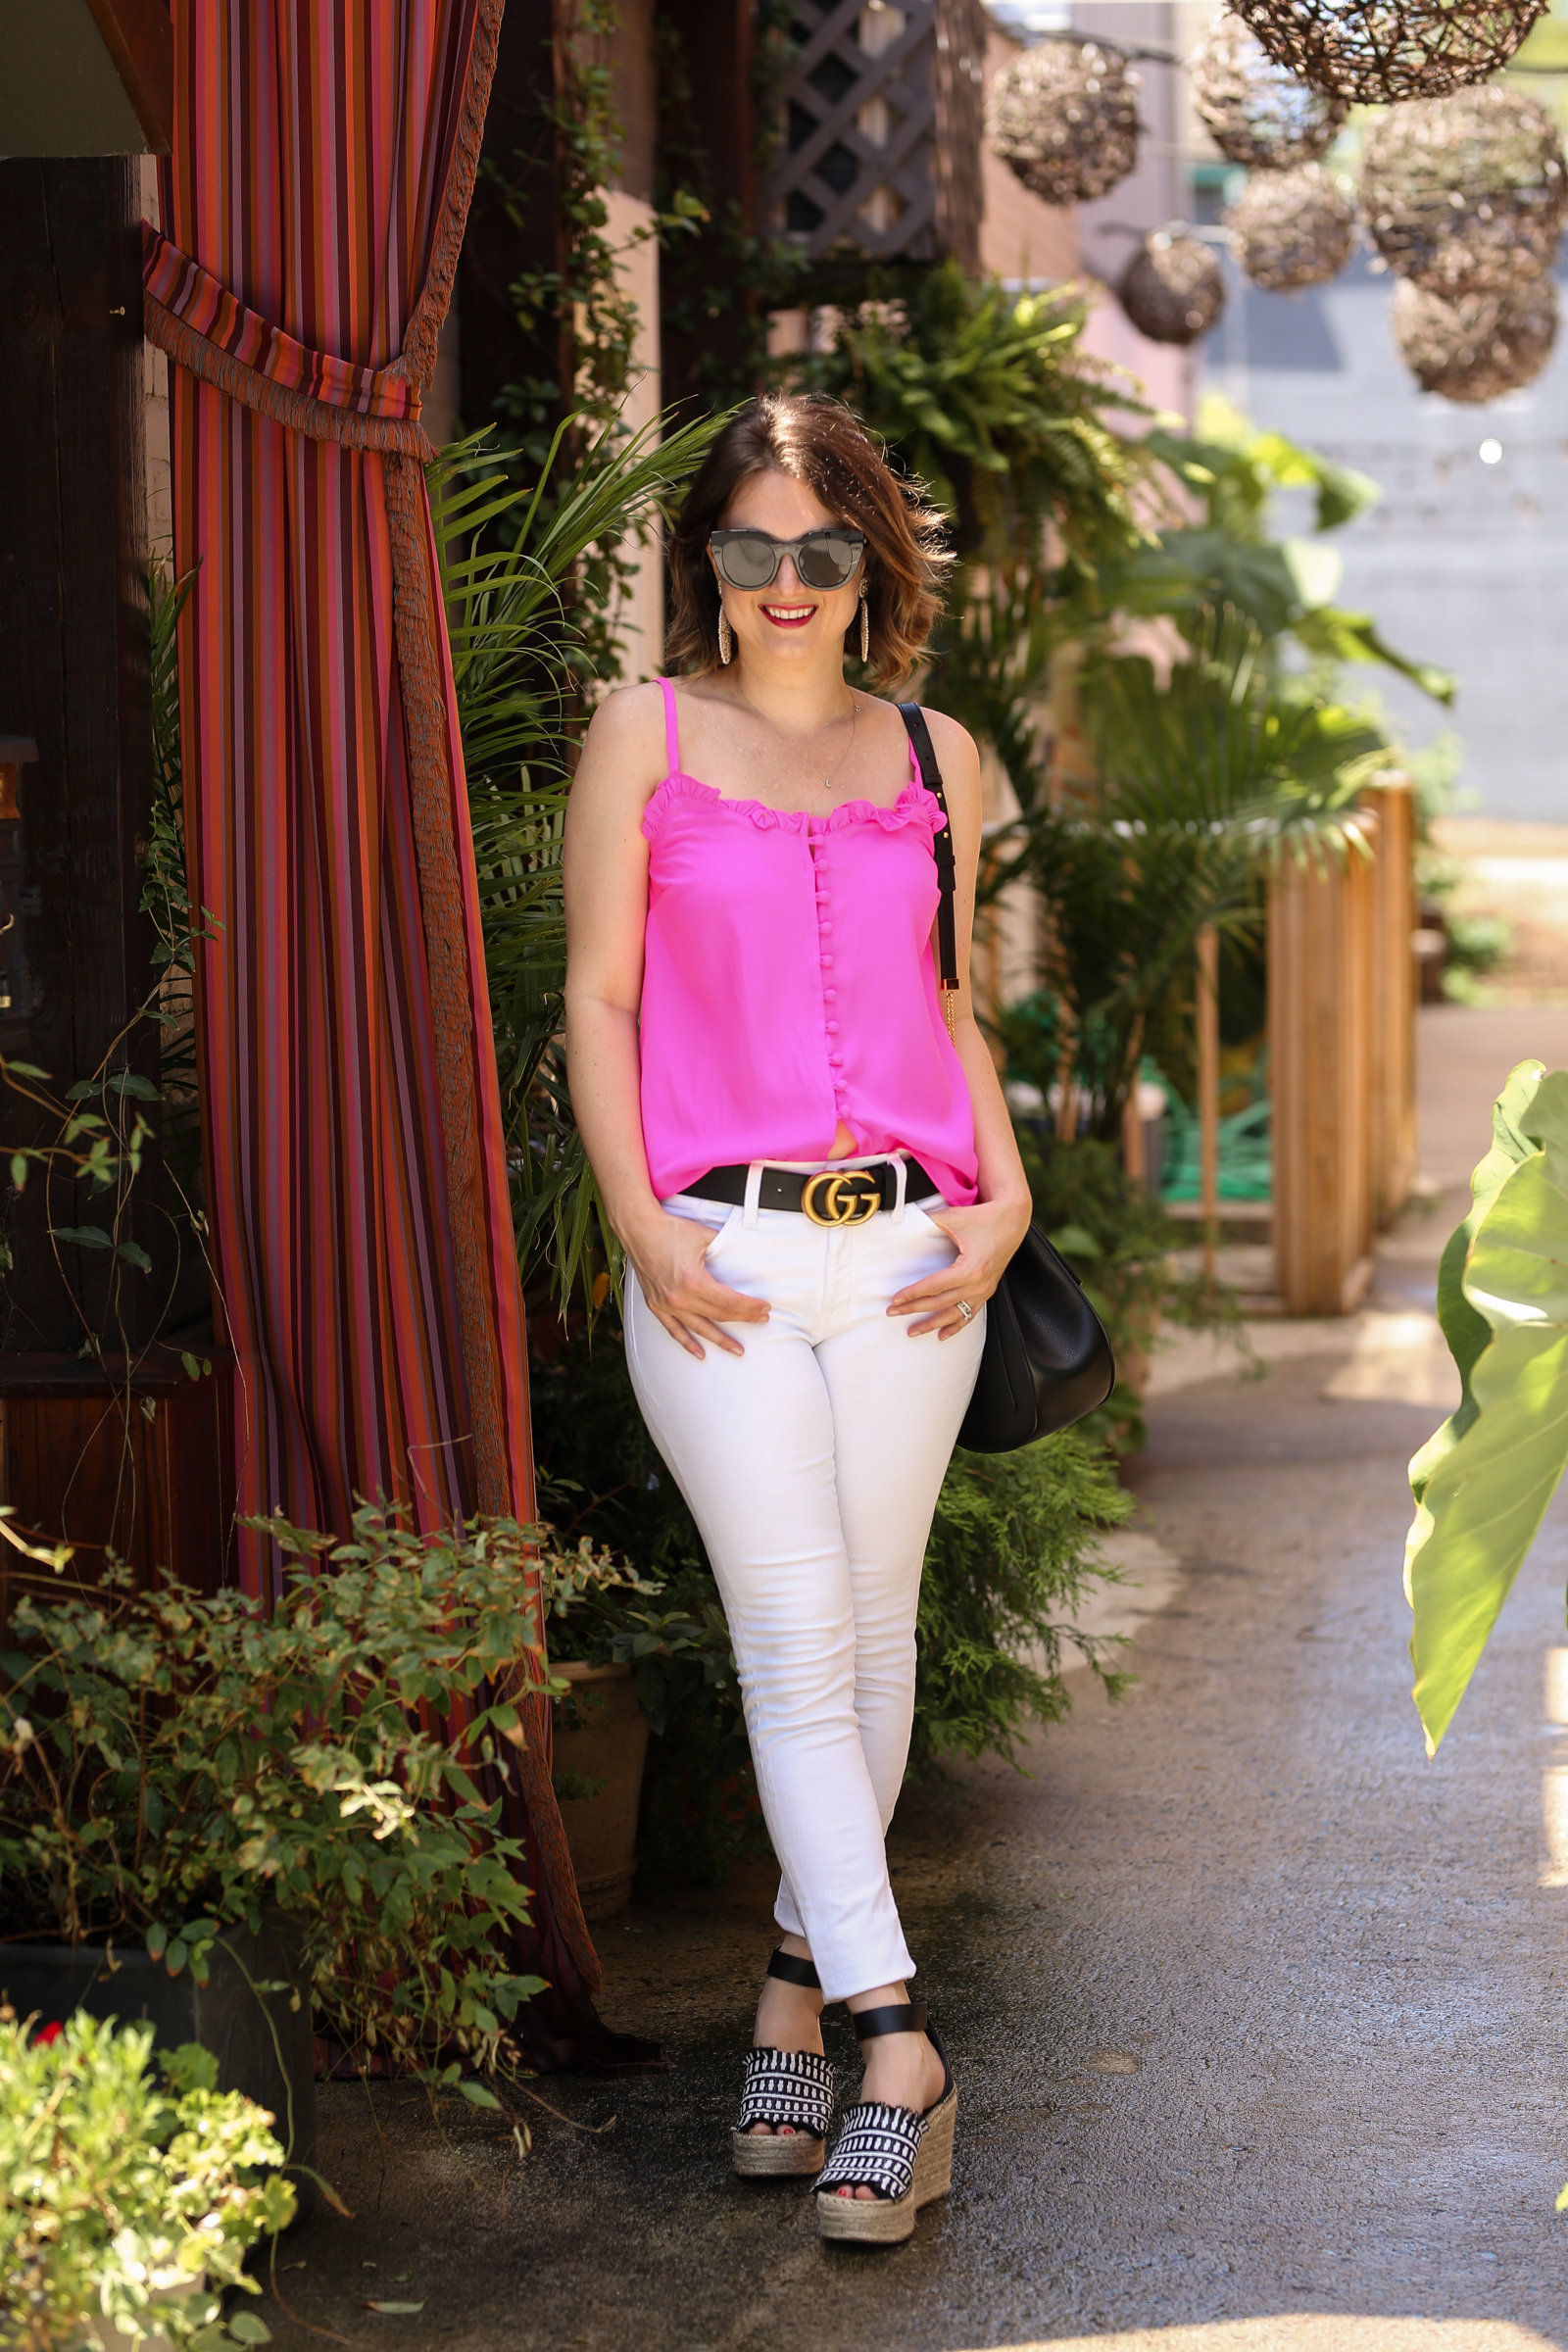 How to pink a hot wear top best photo